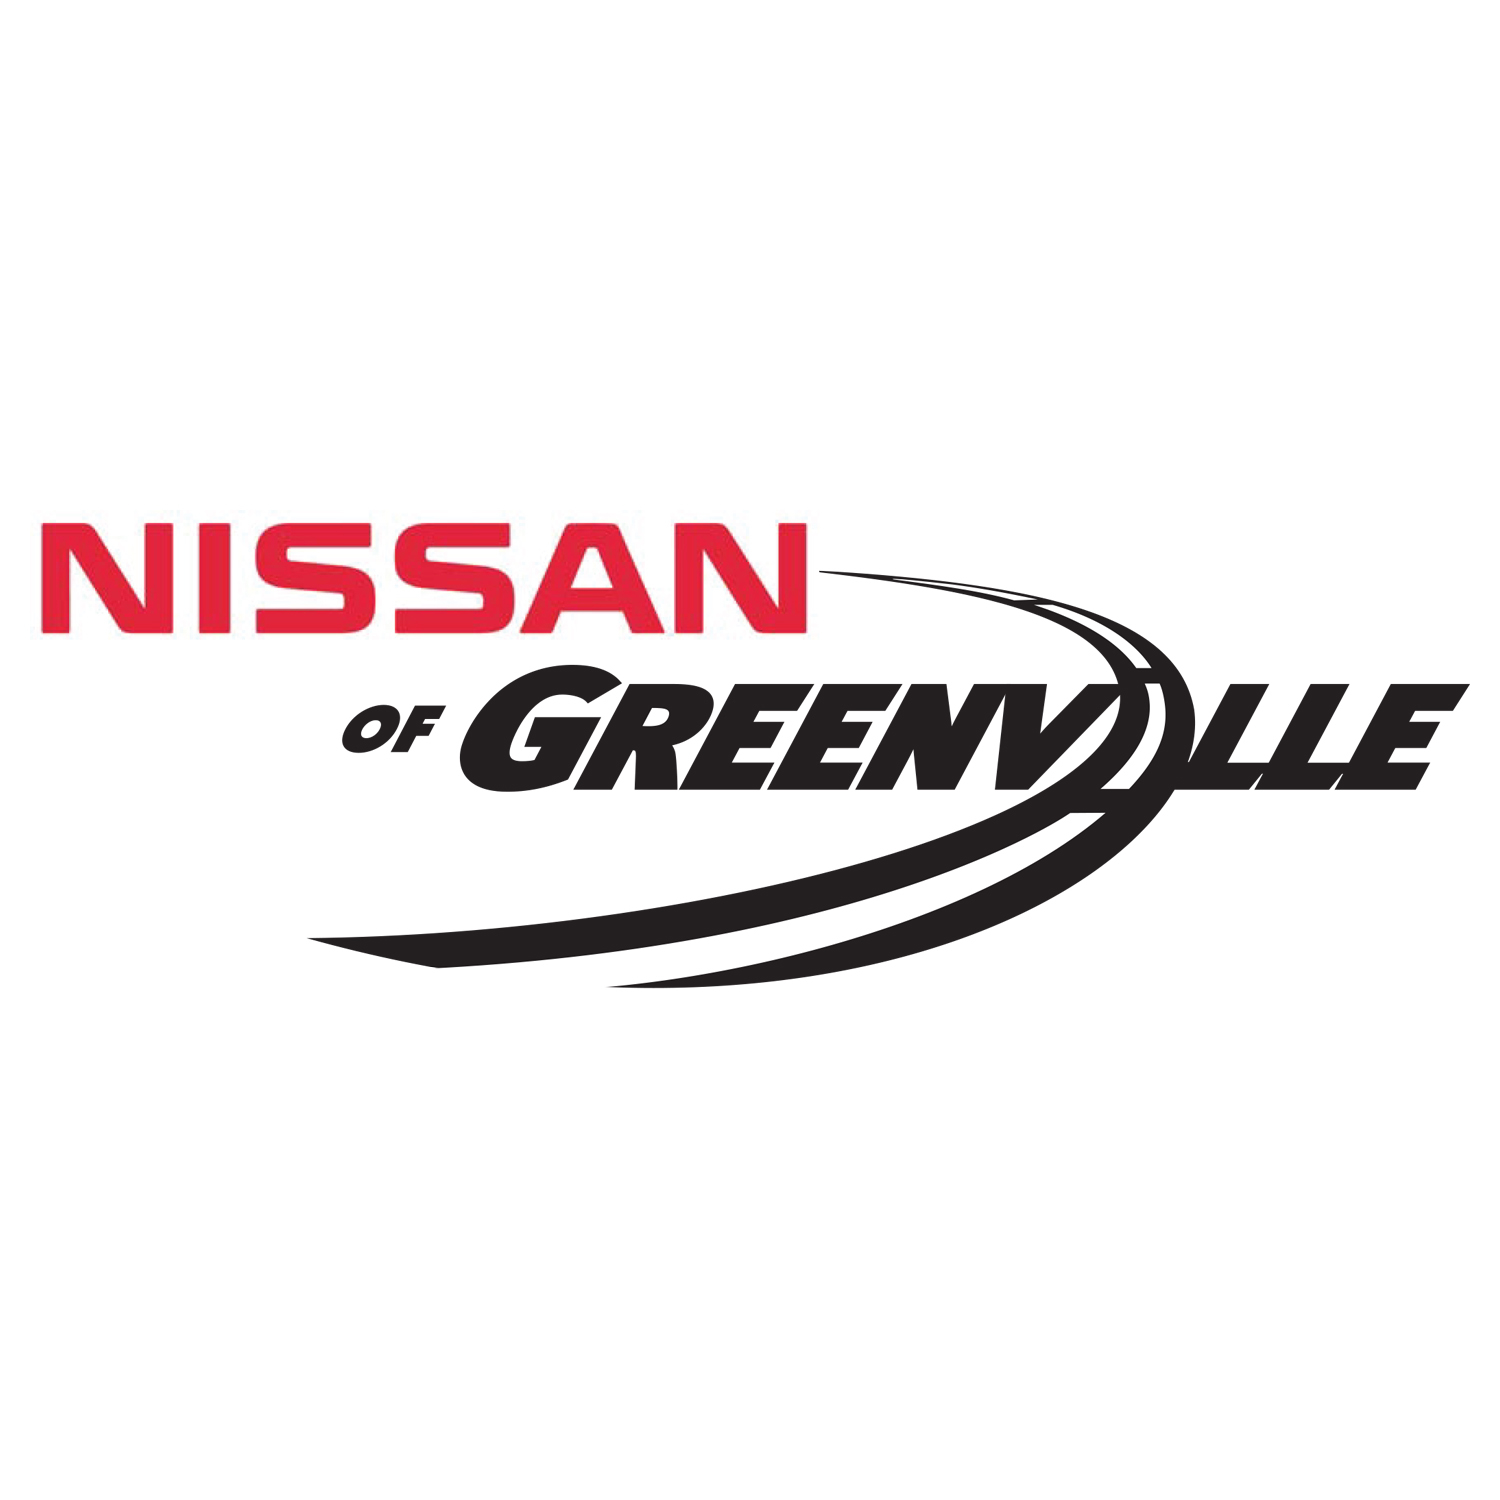 Nissan Car Dealerships Near Me: Nissan Of Greenville Coupons Near Me In Greenville